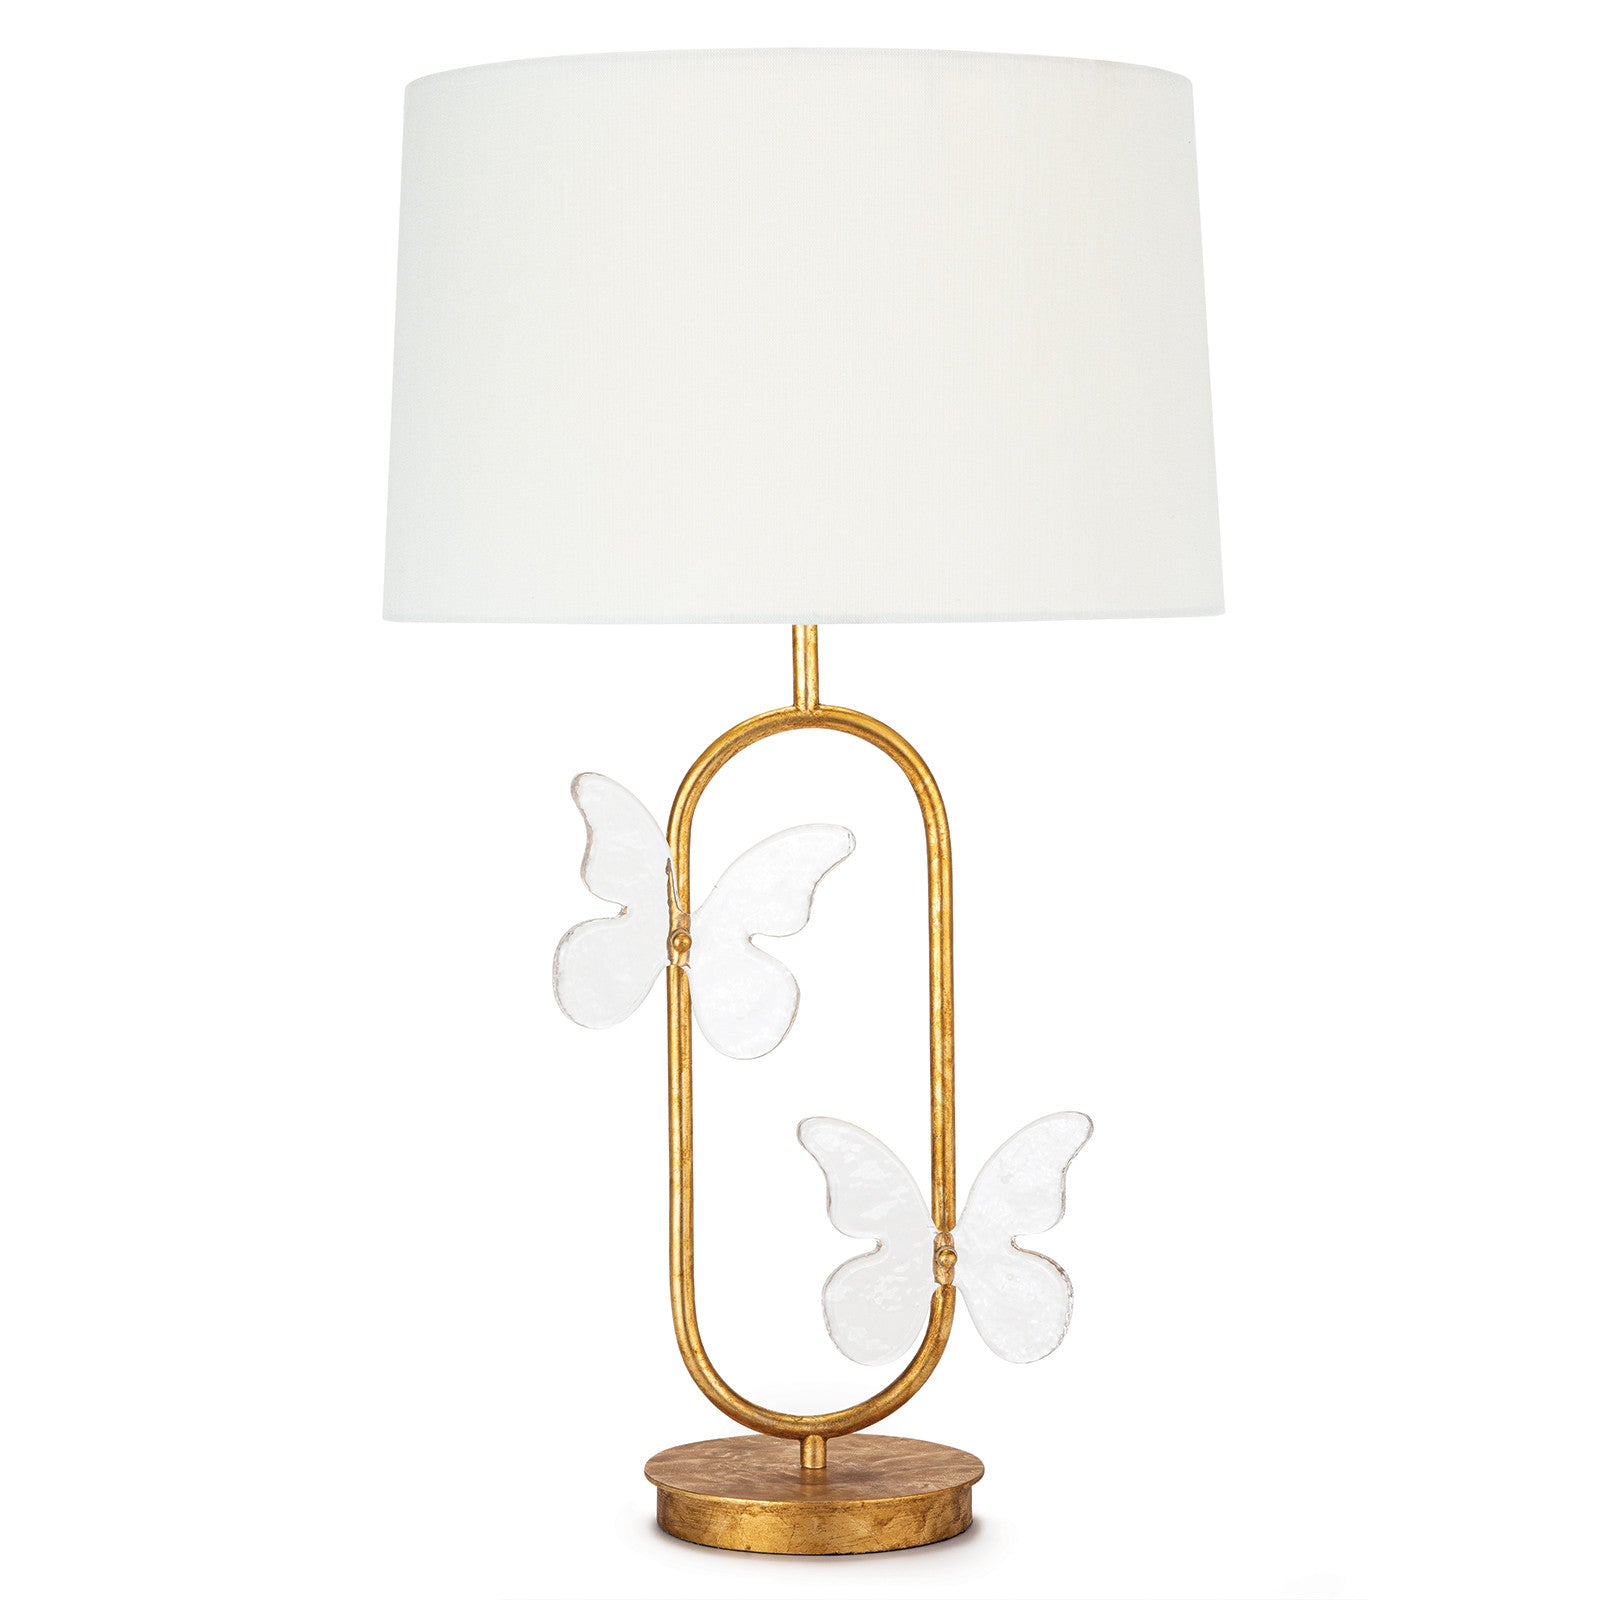 Monarch Oval Table Lamp 13-1490